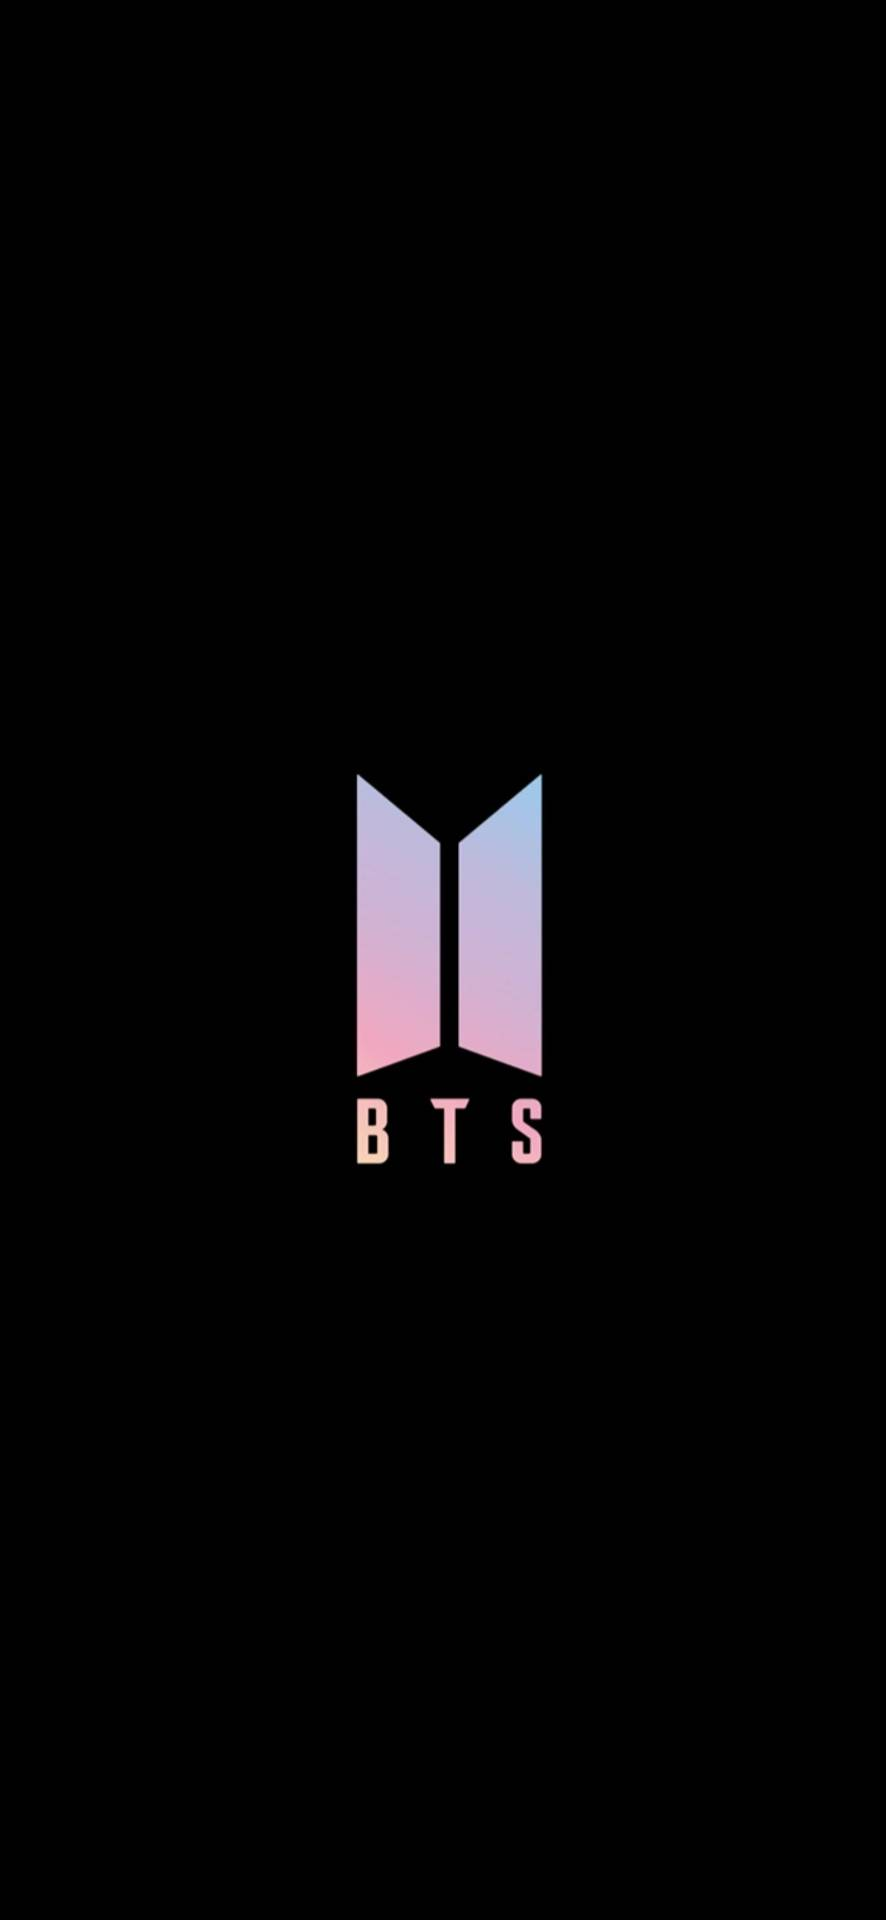 Bts Logo Wallpaper Iphone Bts Wallpaper 2019 Logo 886x1920 Wallpaper Teahub Io